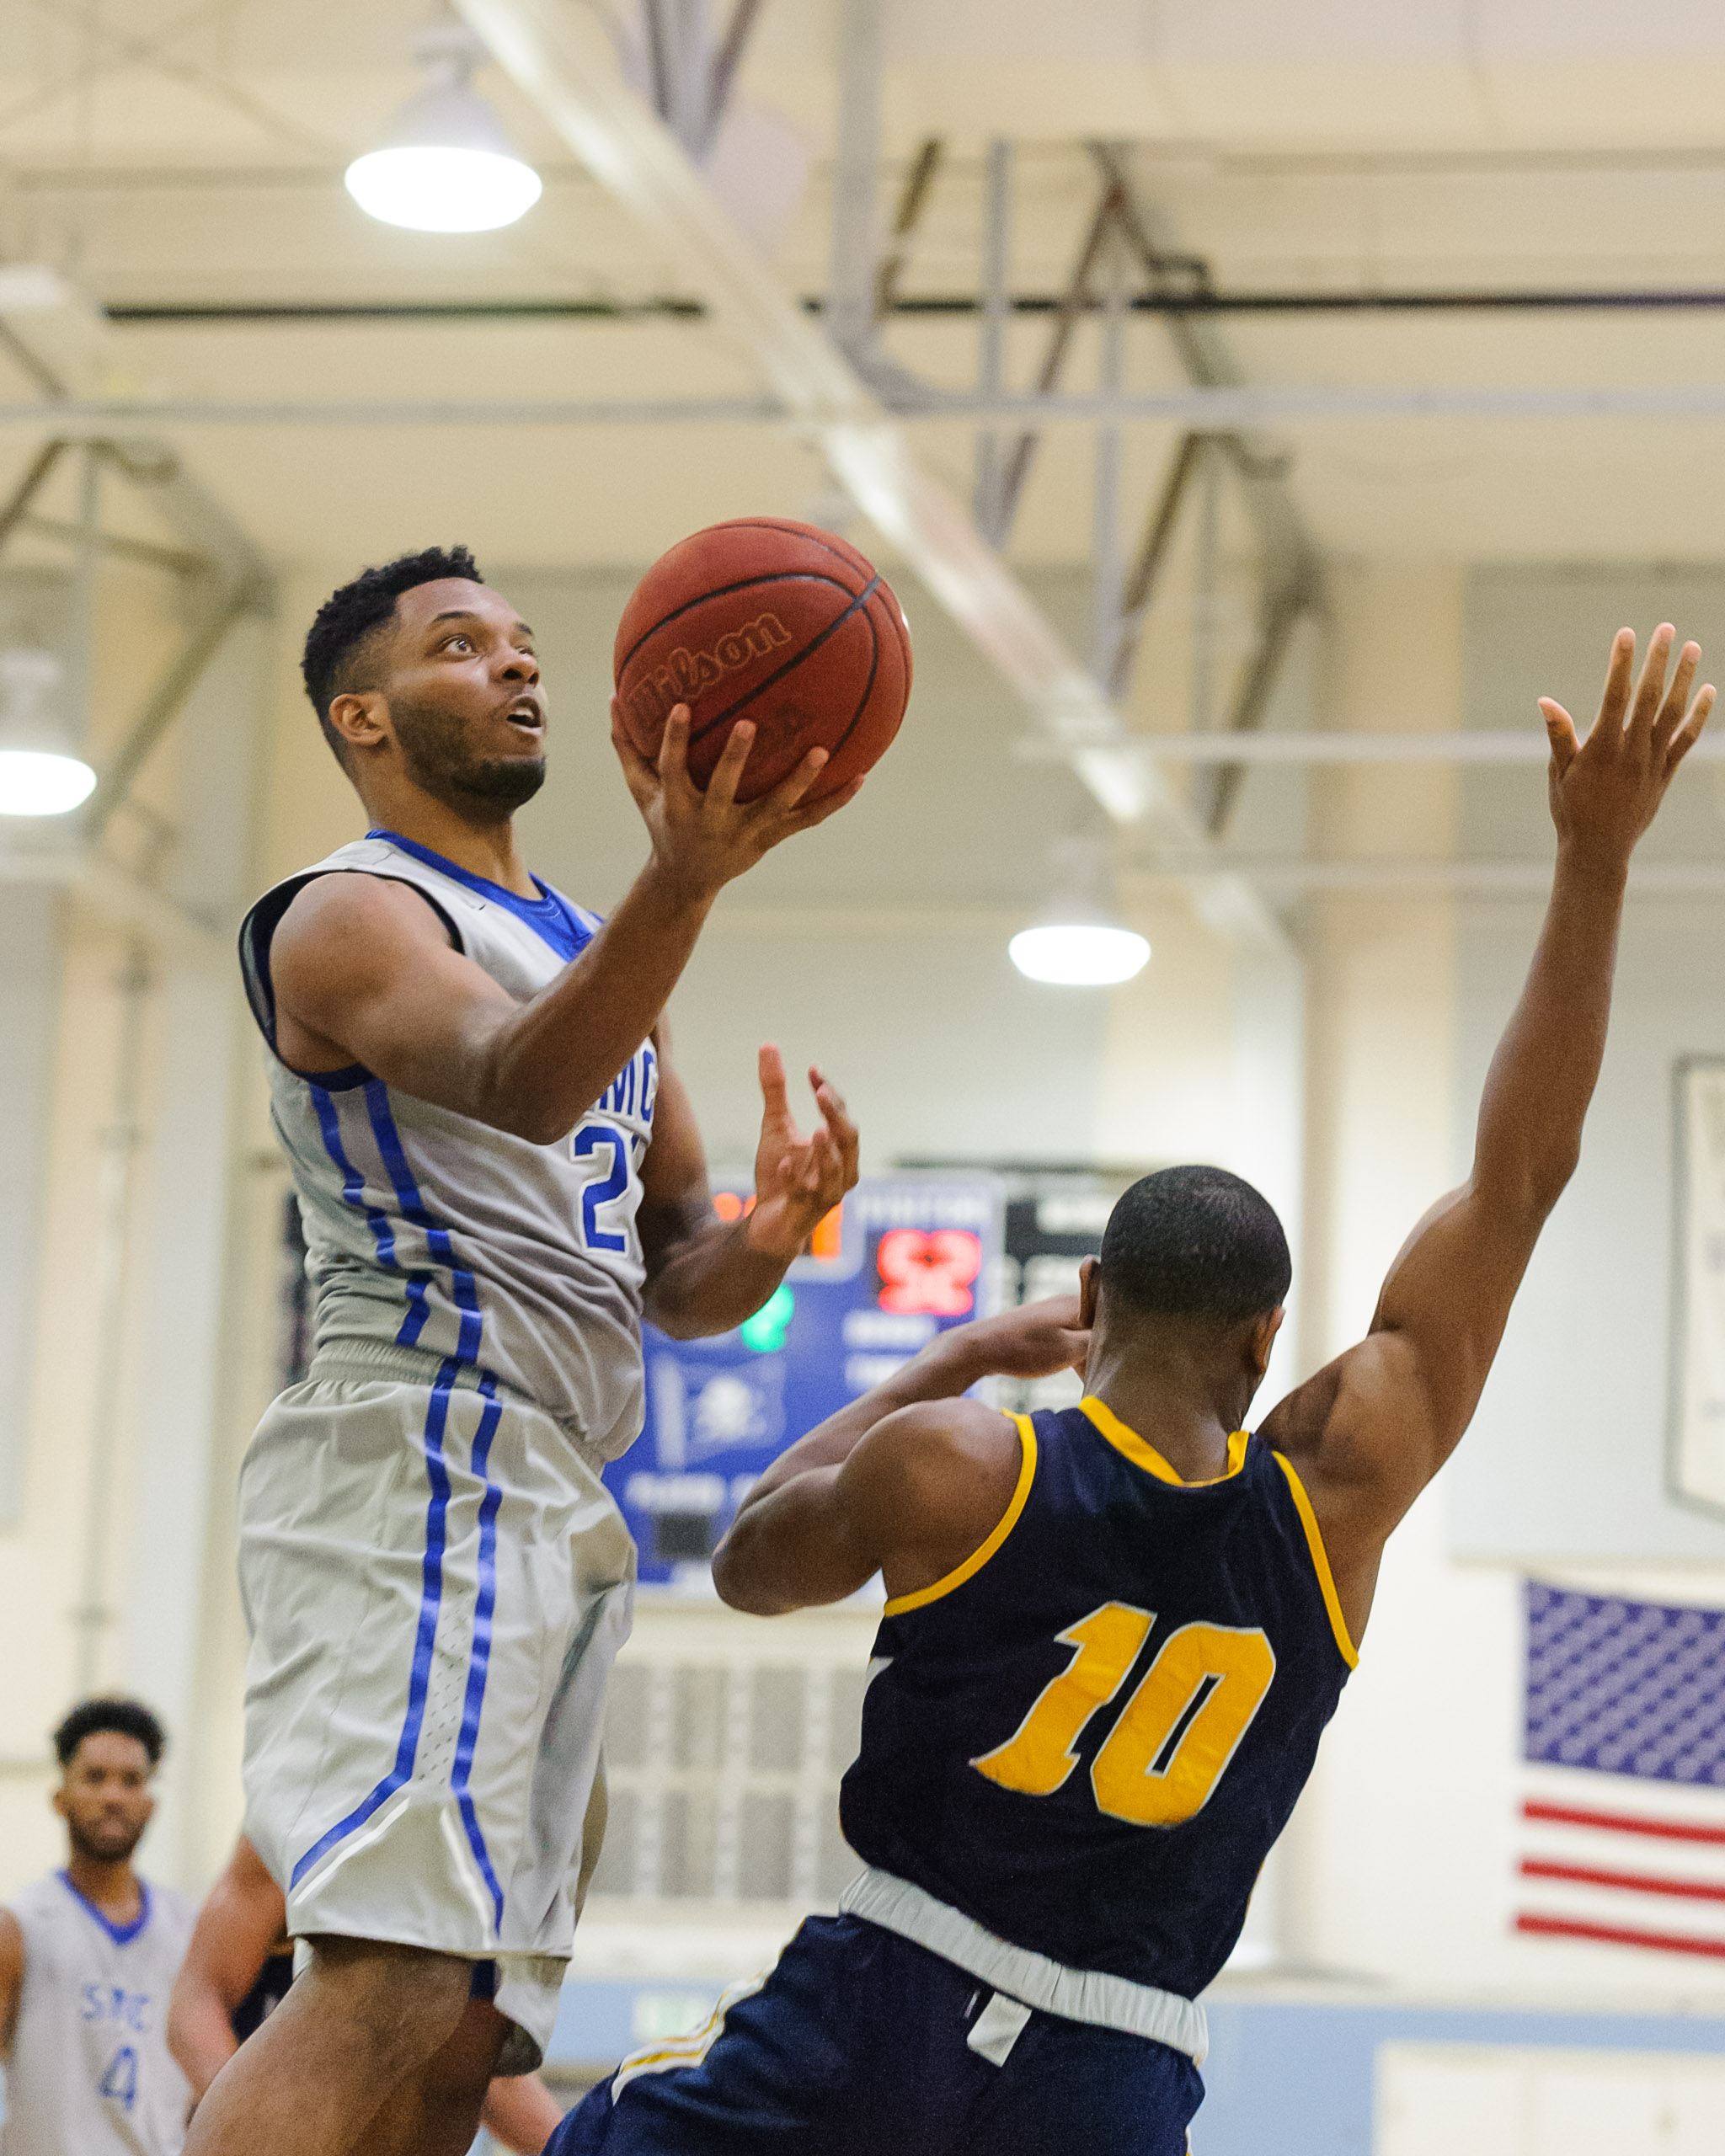 Forward Khalil Taylor (21,Left) of Santa Monica College goes up for a layup while guarded by Michael Kalu (10,Right) of the College of the Canyons. The Santa Monica College Corsairs lose the game 74-72 to the College of the Canyons Cougars. The game was held at the SMC Pavilion at the Santa Monica College Main Campus in Santa Monica, Calif.. February 10, 2018. (Photo by: Justin Han/Corsair Staff)